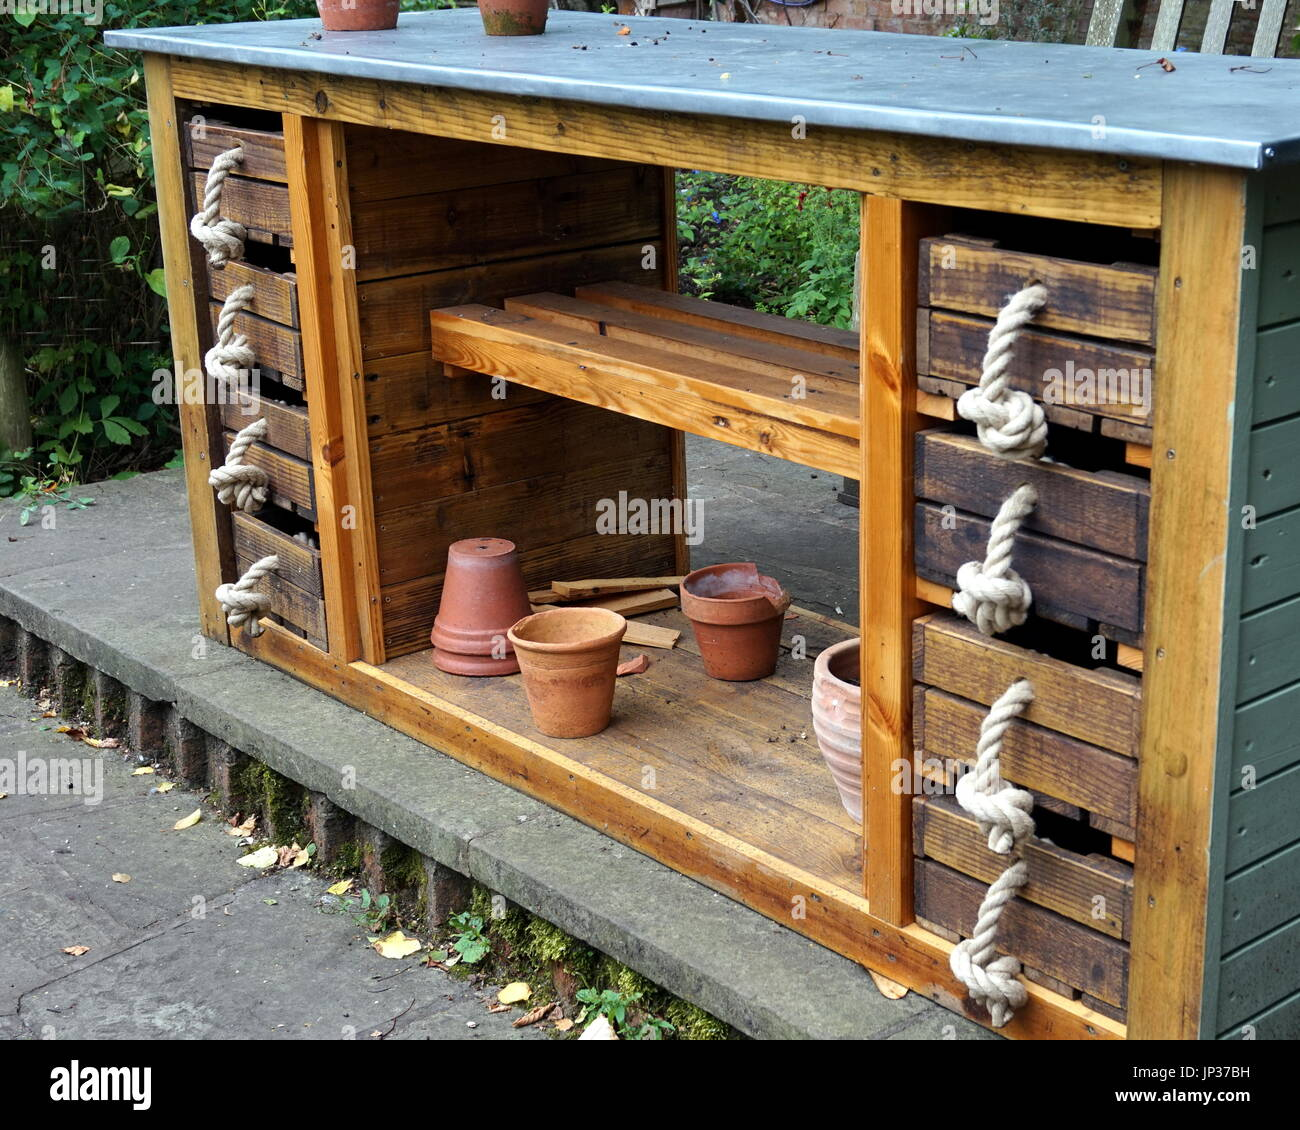 Unique and unusual garden storage unit with drawer handles made